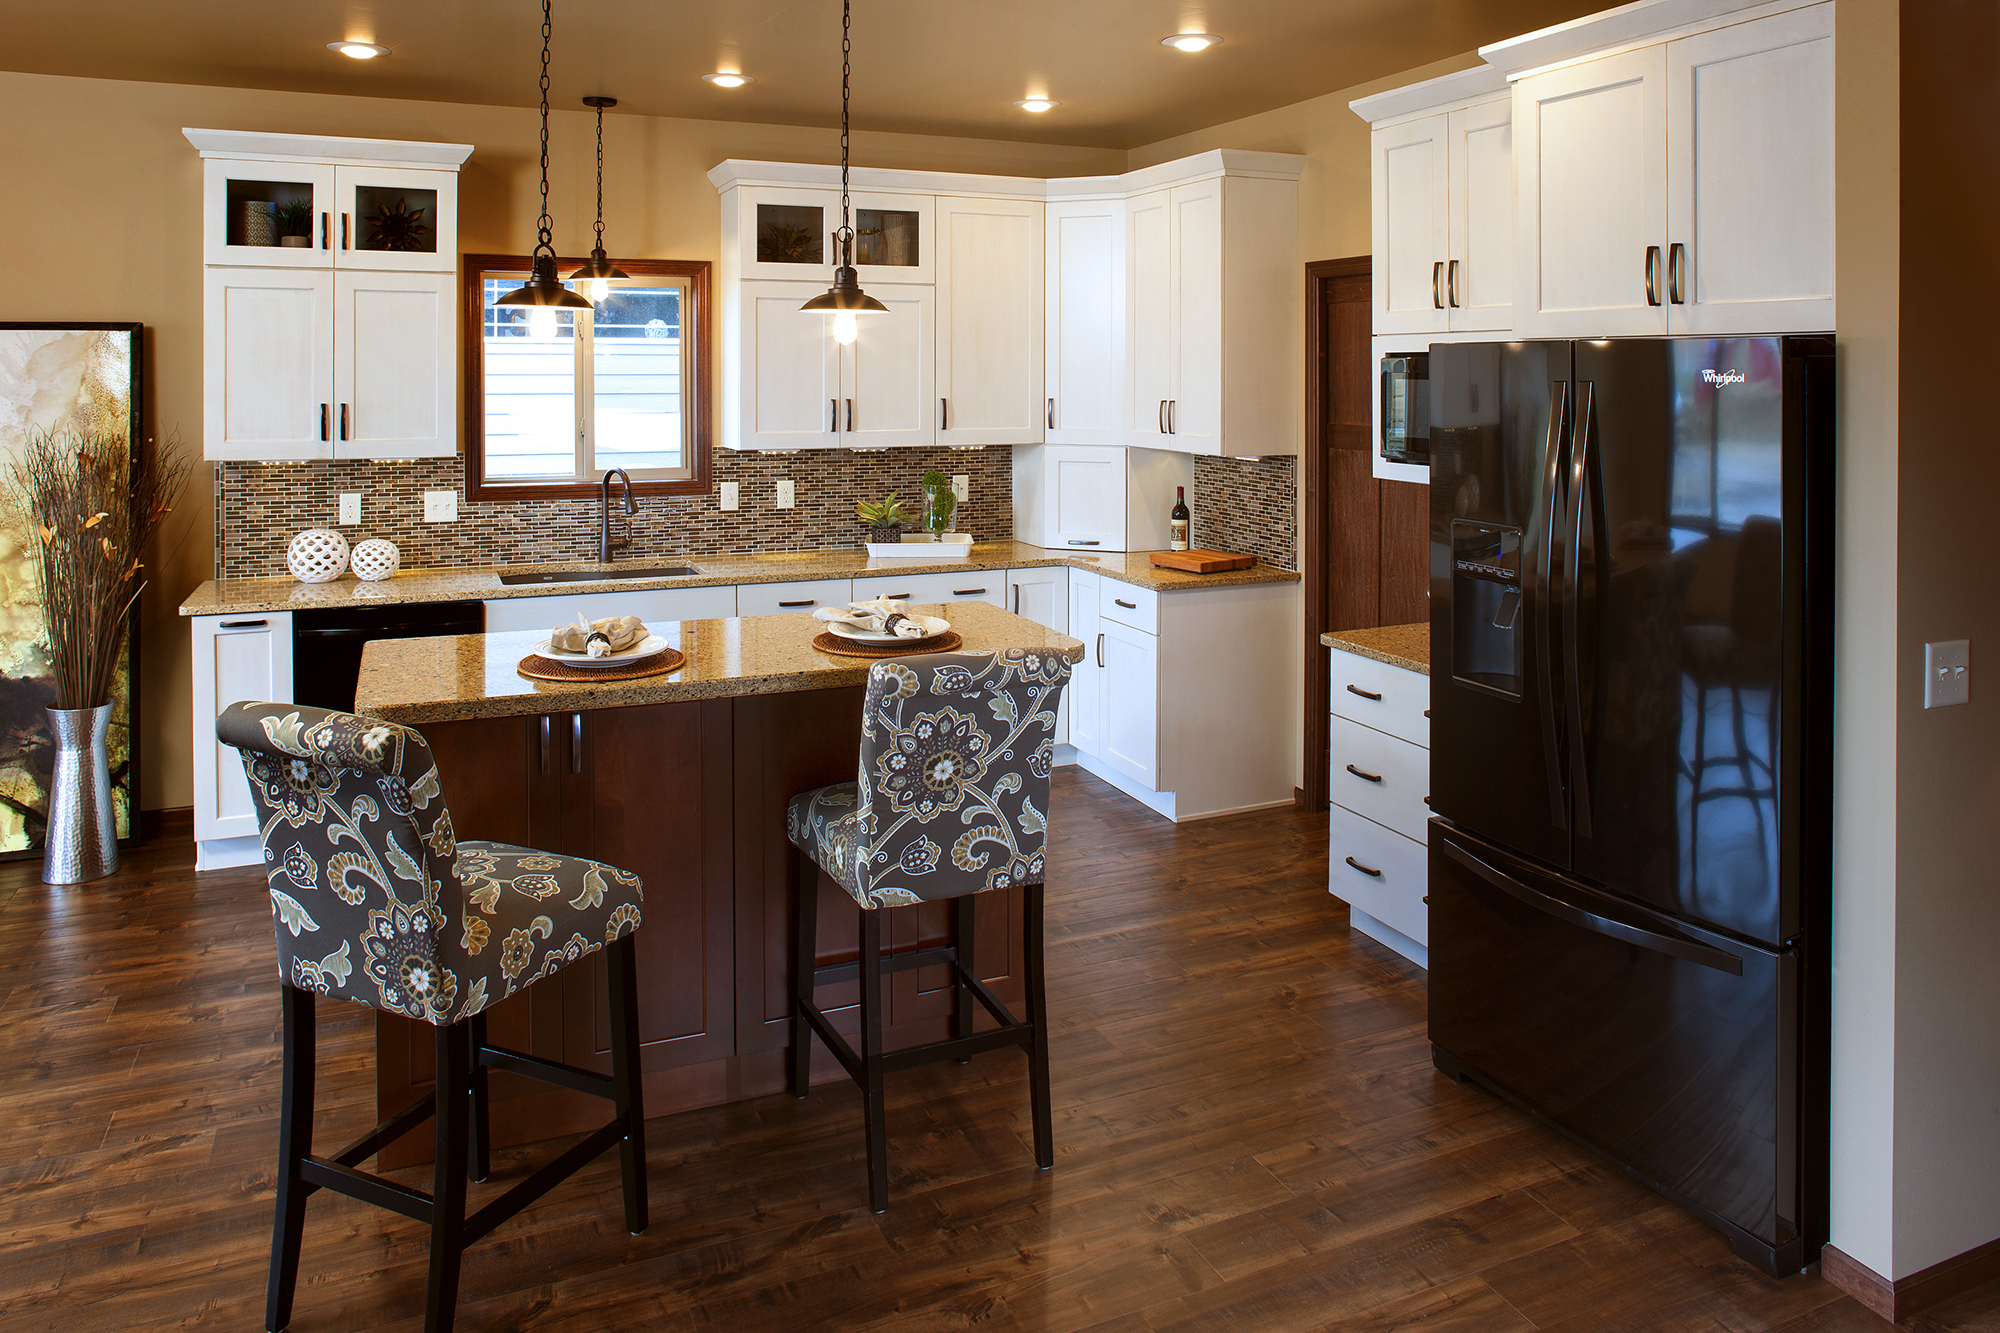 Painted Kitchen Cabinets in Pure White and Stained Island in Harvest by ShowplaceEVO - view 1